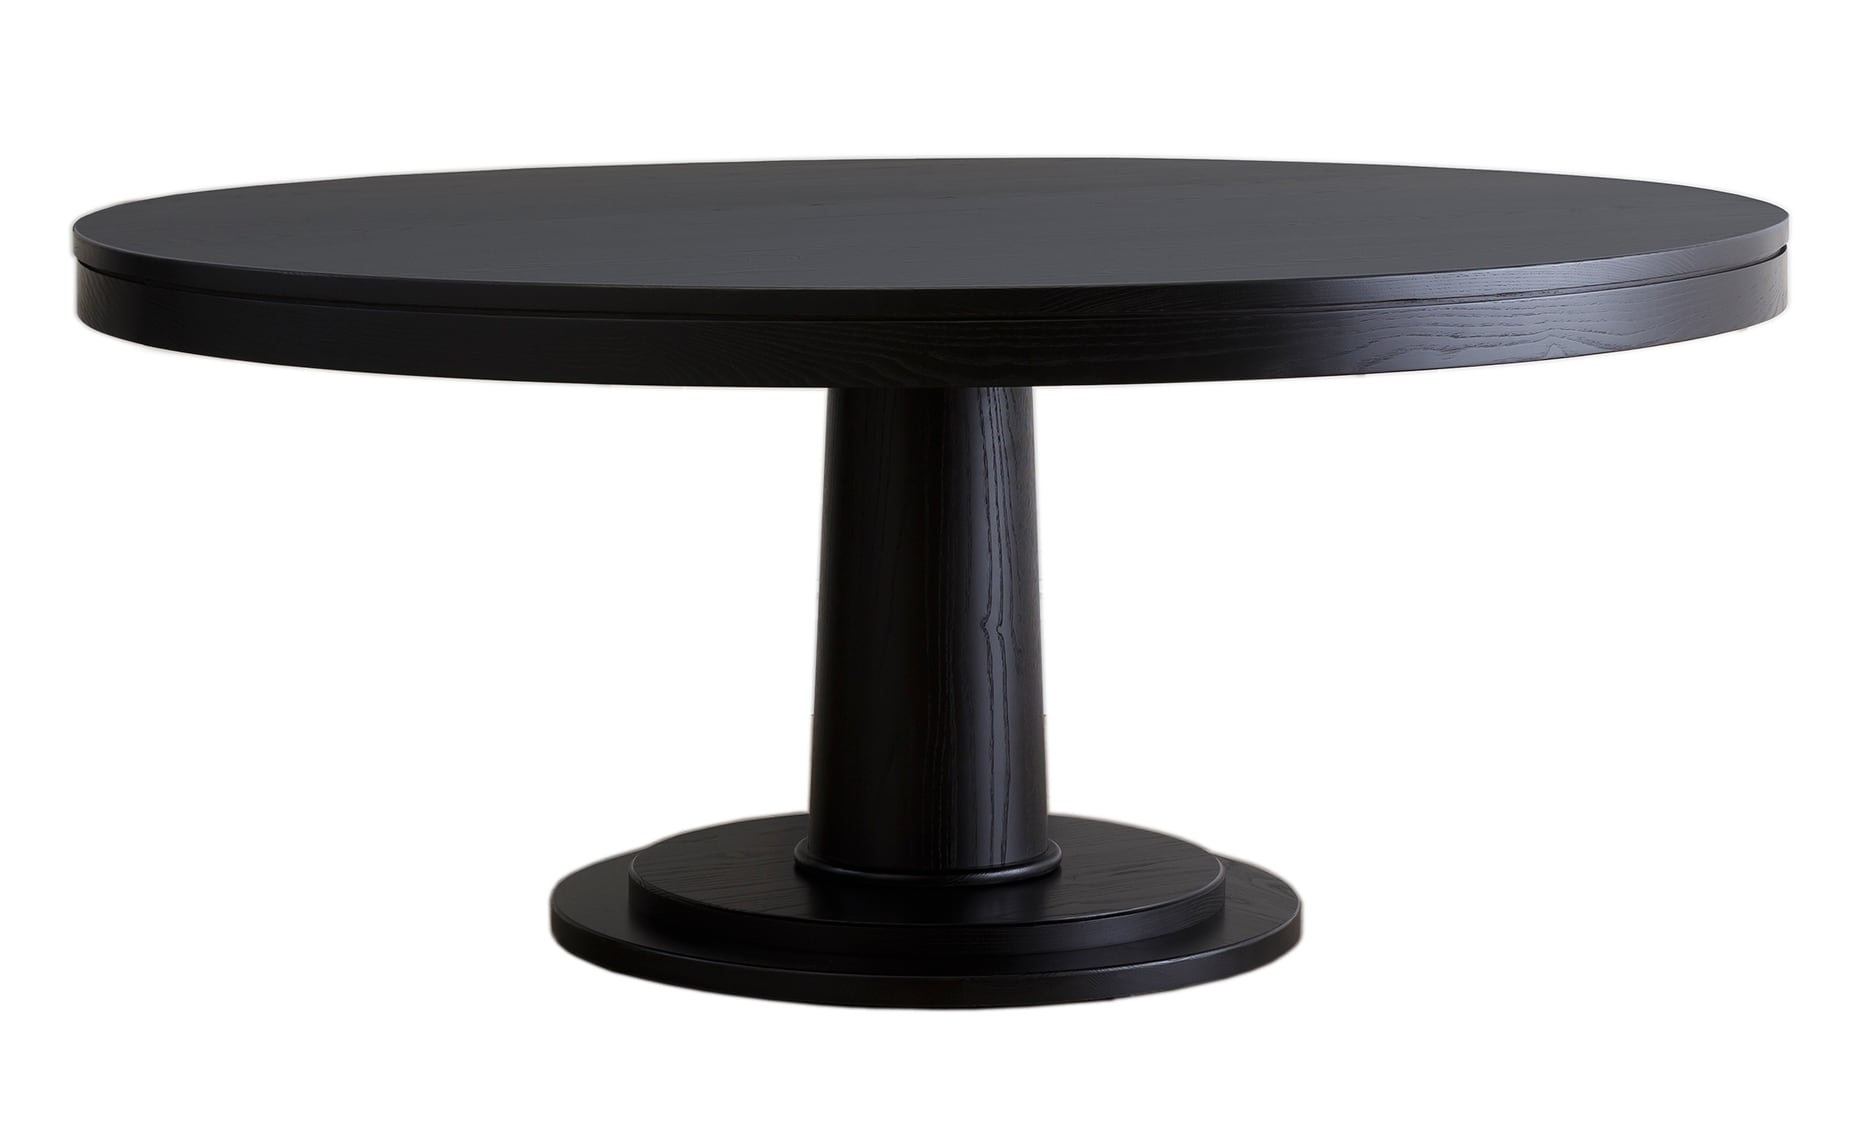 Caira Table – Keystone Designer With Regard To Most Up To Date Caira Black Round Dining Tables (Image 9 of 20)